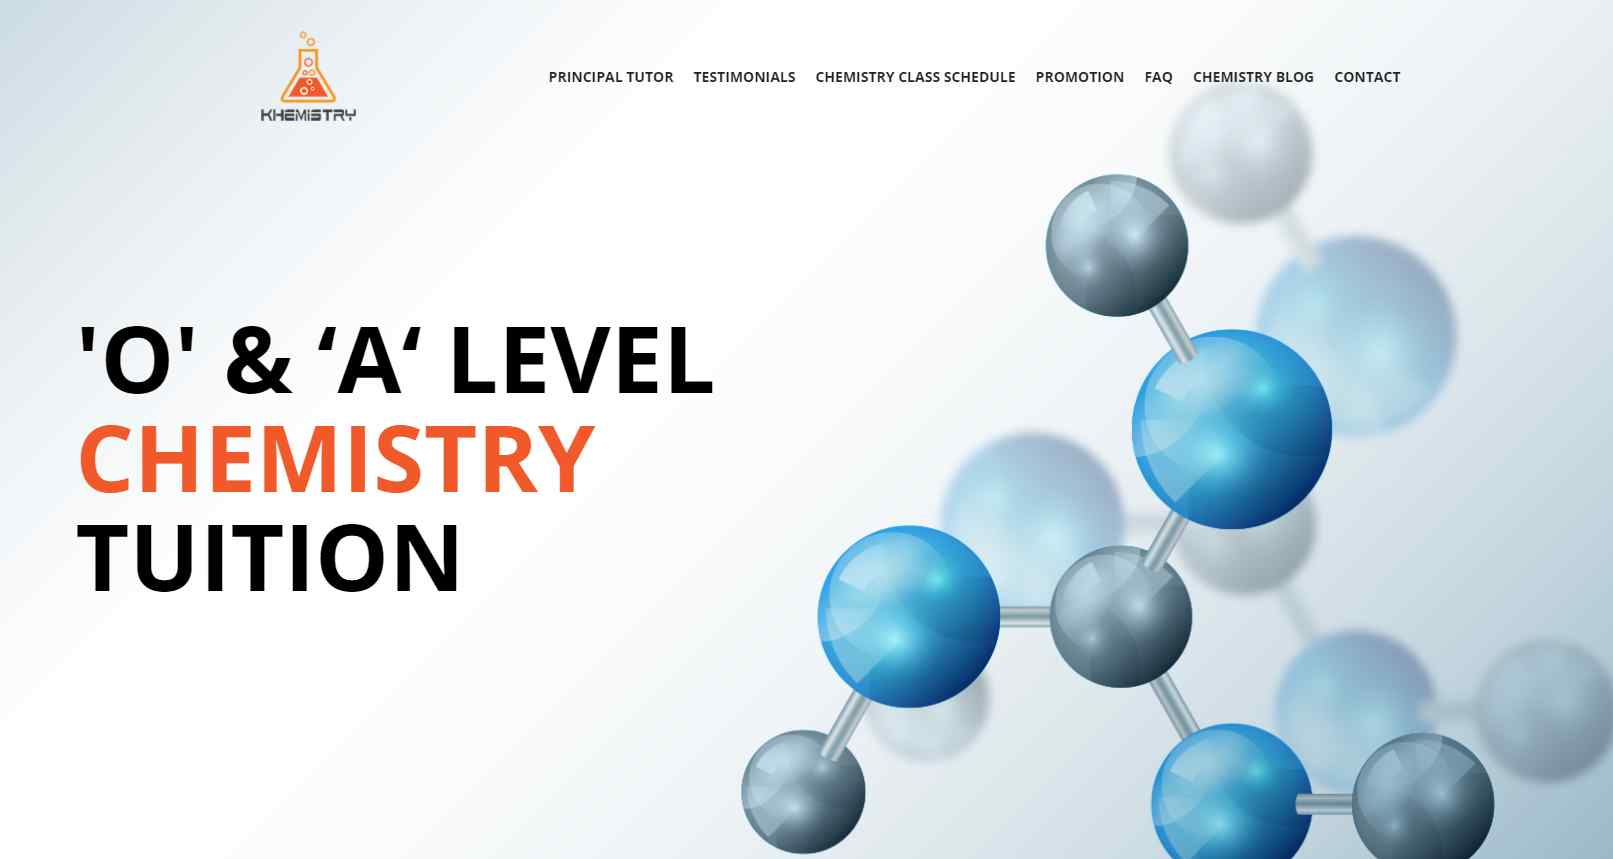 mr khemistry Top Chemistry Tuition Centres in Singapore